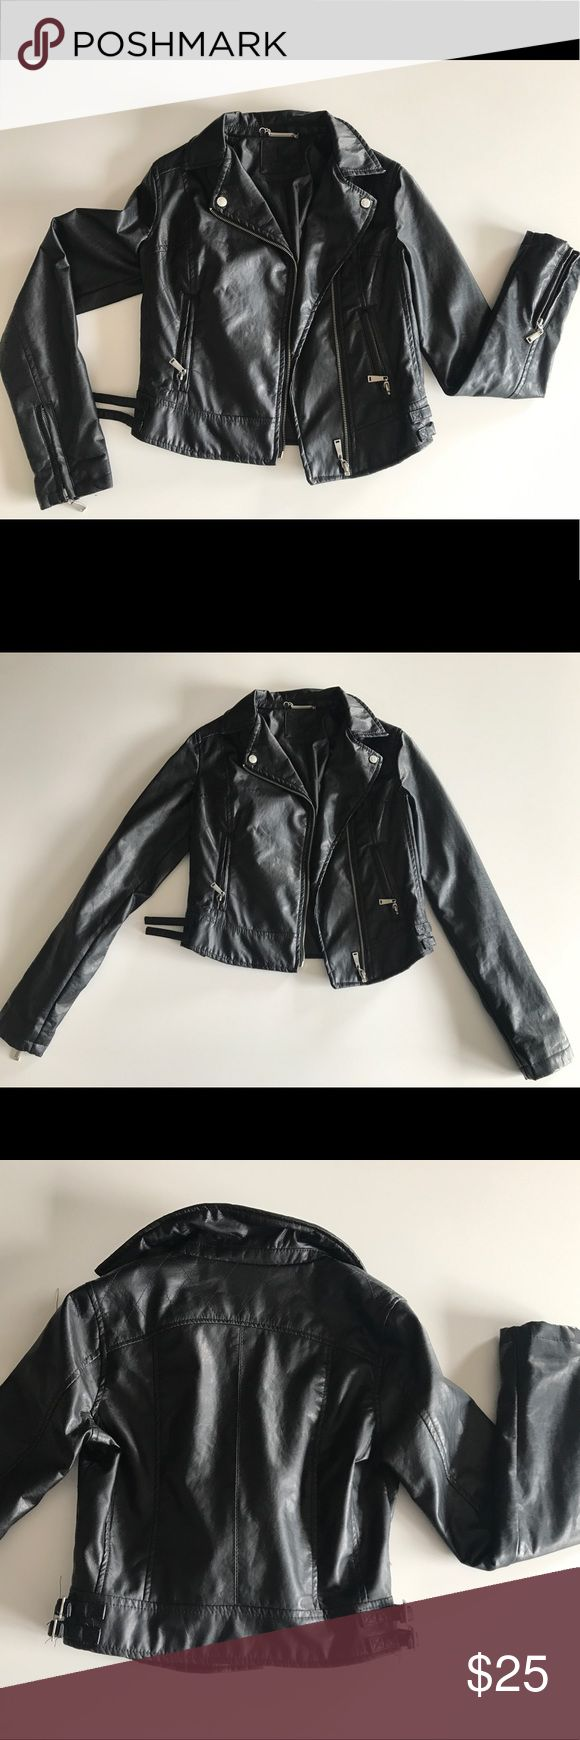 Super sassy black faux leather jacket Super sassy black faux leather jacket! Never worn. Throw on your boots and favorite jeans. Jackets & Coats